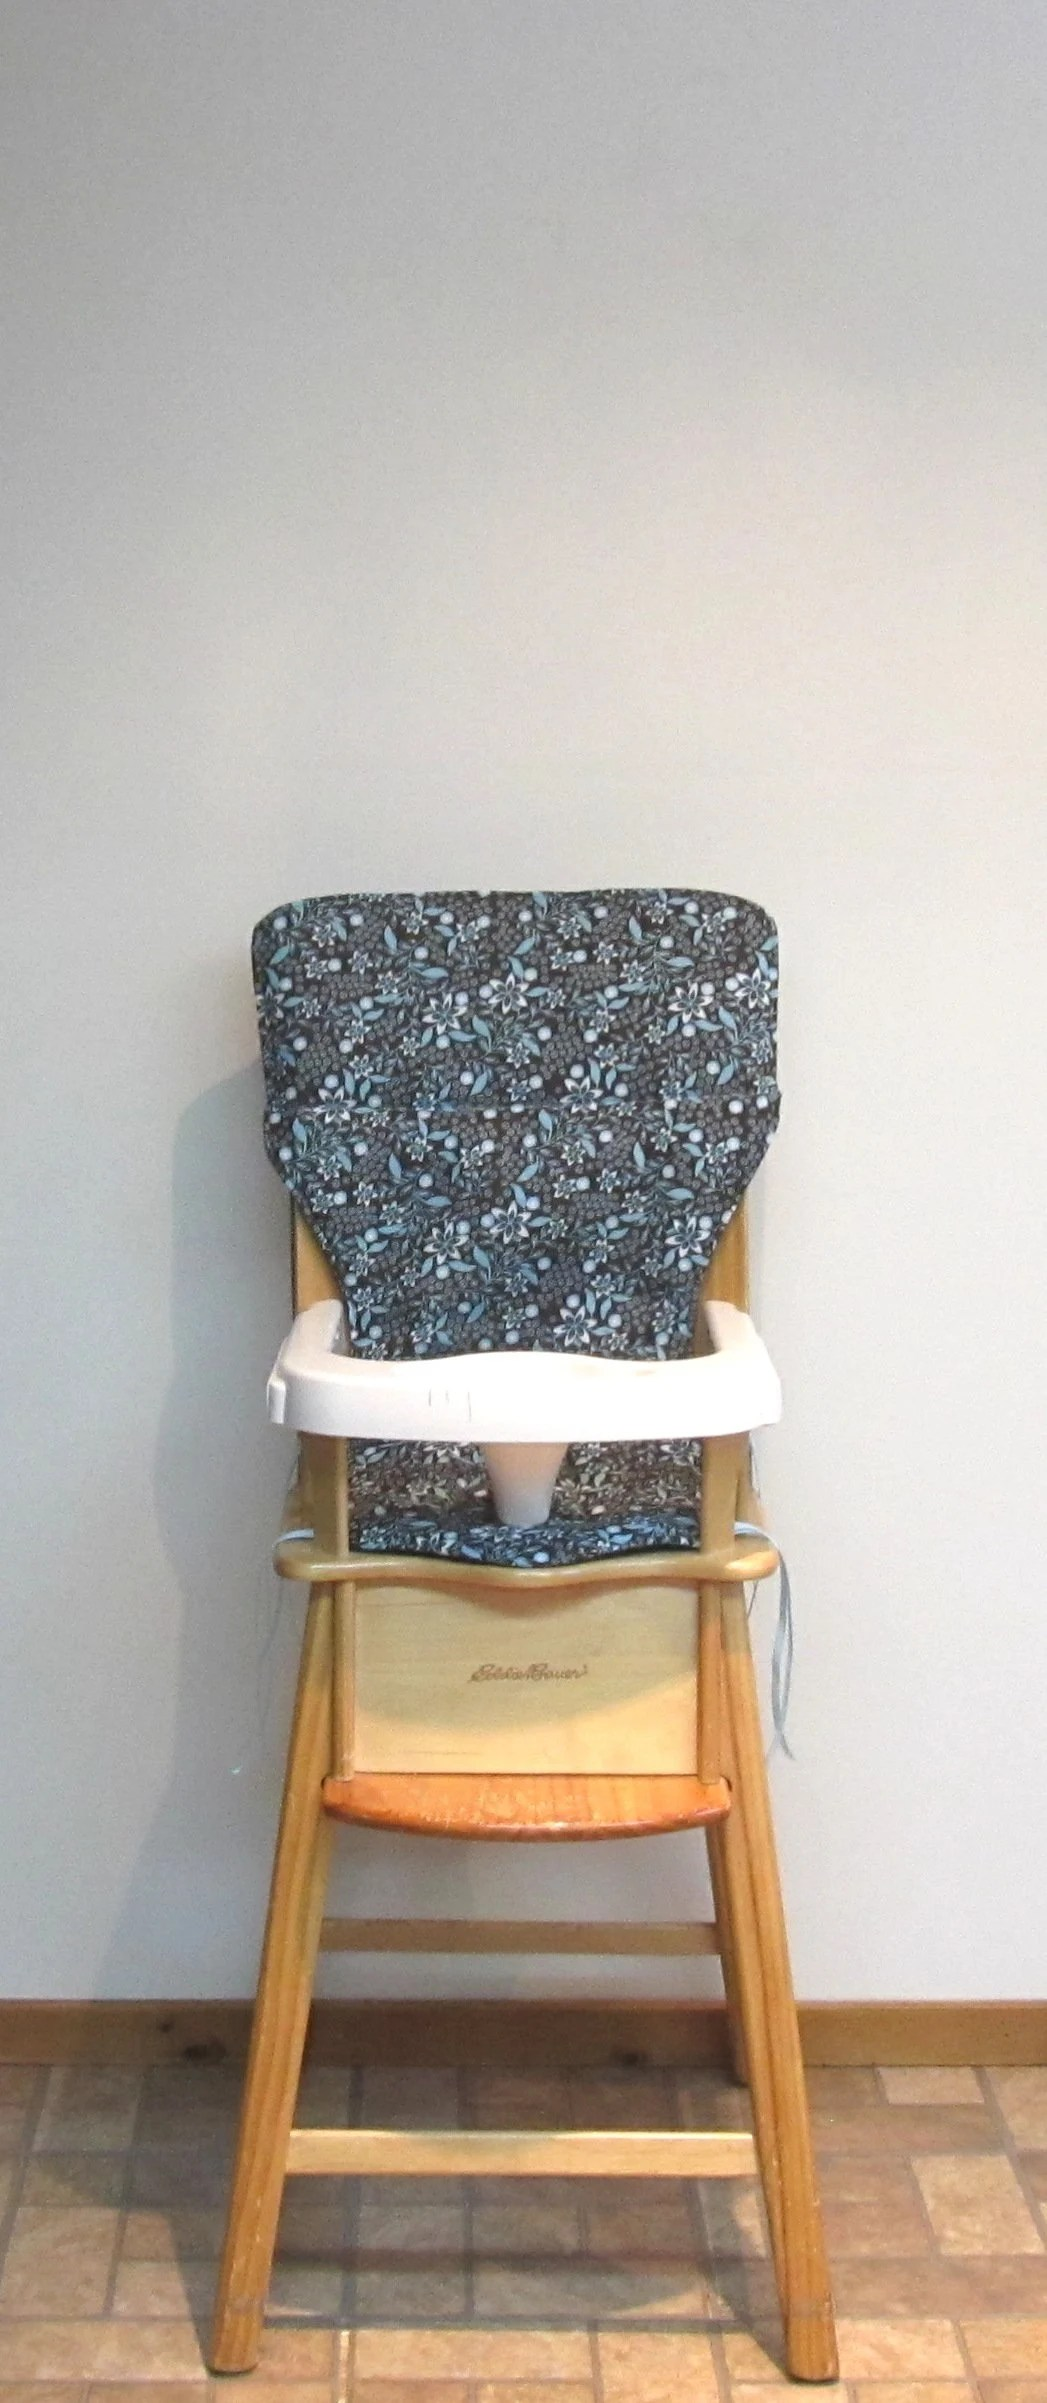 eddie bauer wood high chair swivel hunting reviews cover etsy wooden replacement pad for old style seafoam flowers on dark chocolate cushion baby accessory